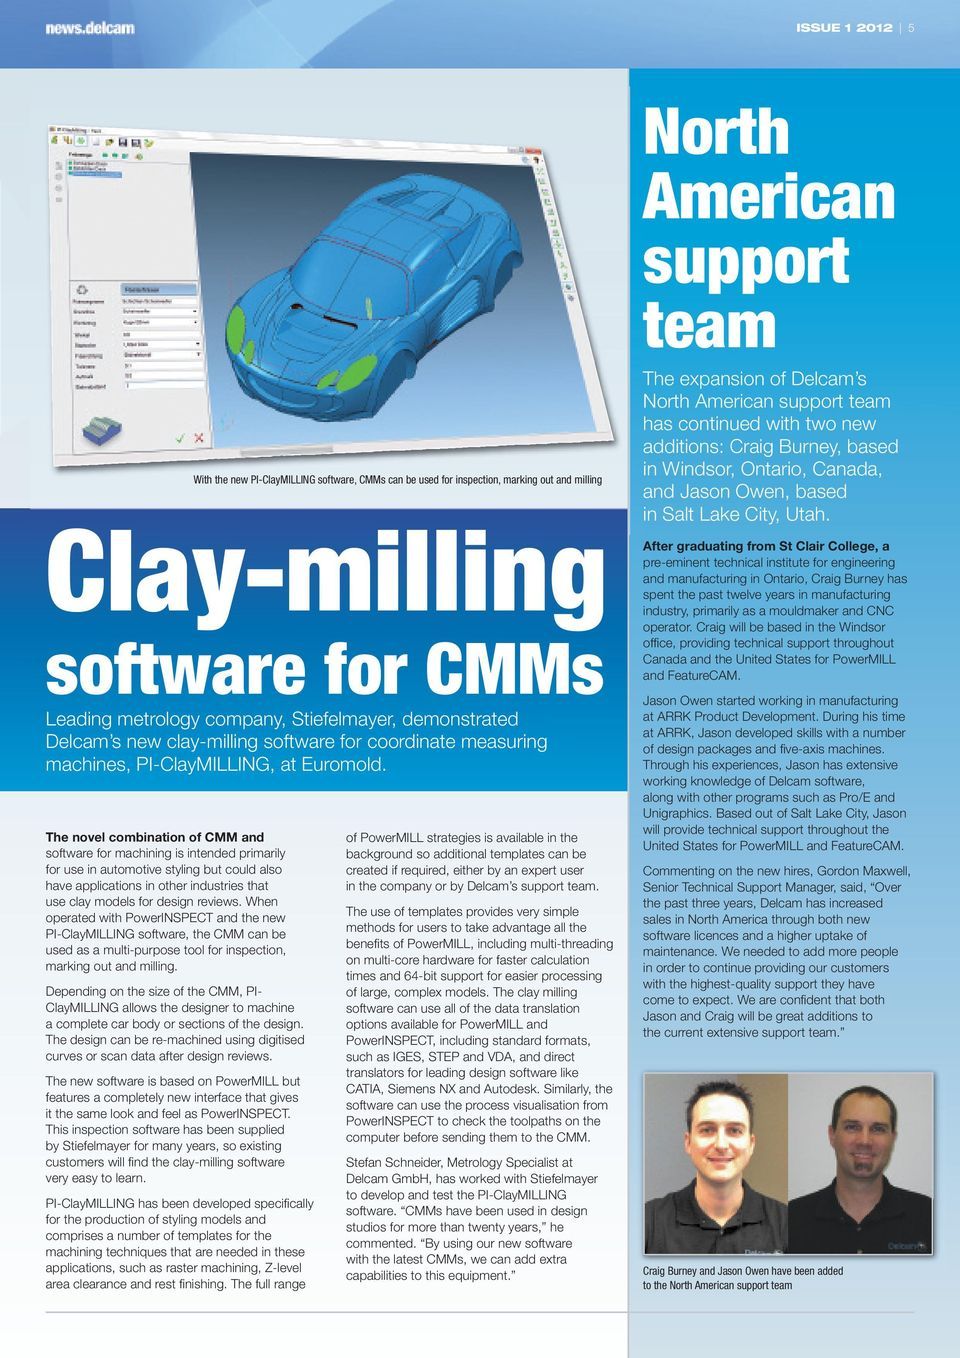 reviews. When operated with PowerINSPECT and the new PI-ClayMILLING software, the CMM can be used as a multi-purpose tool for inspection, marking out and milling.